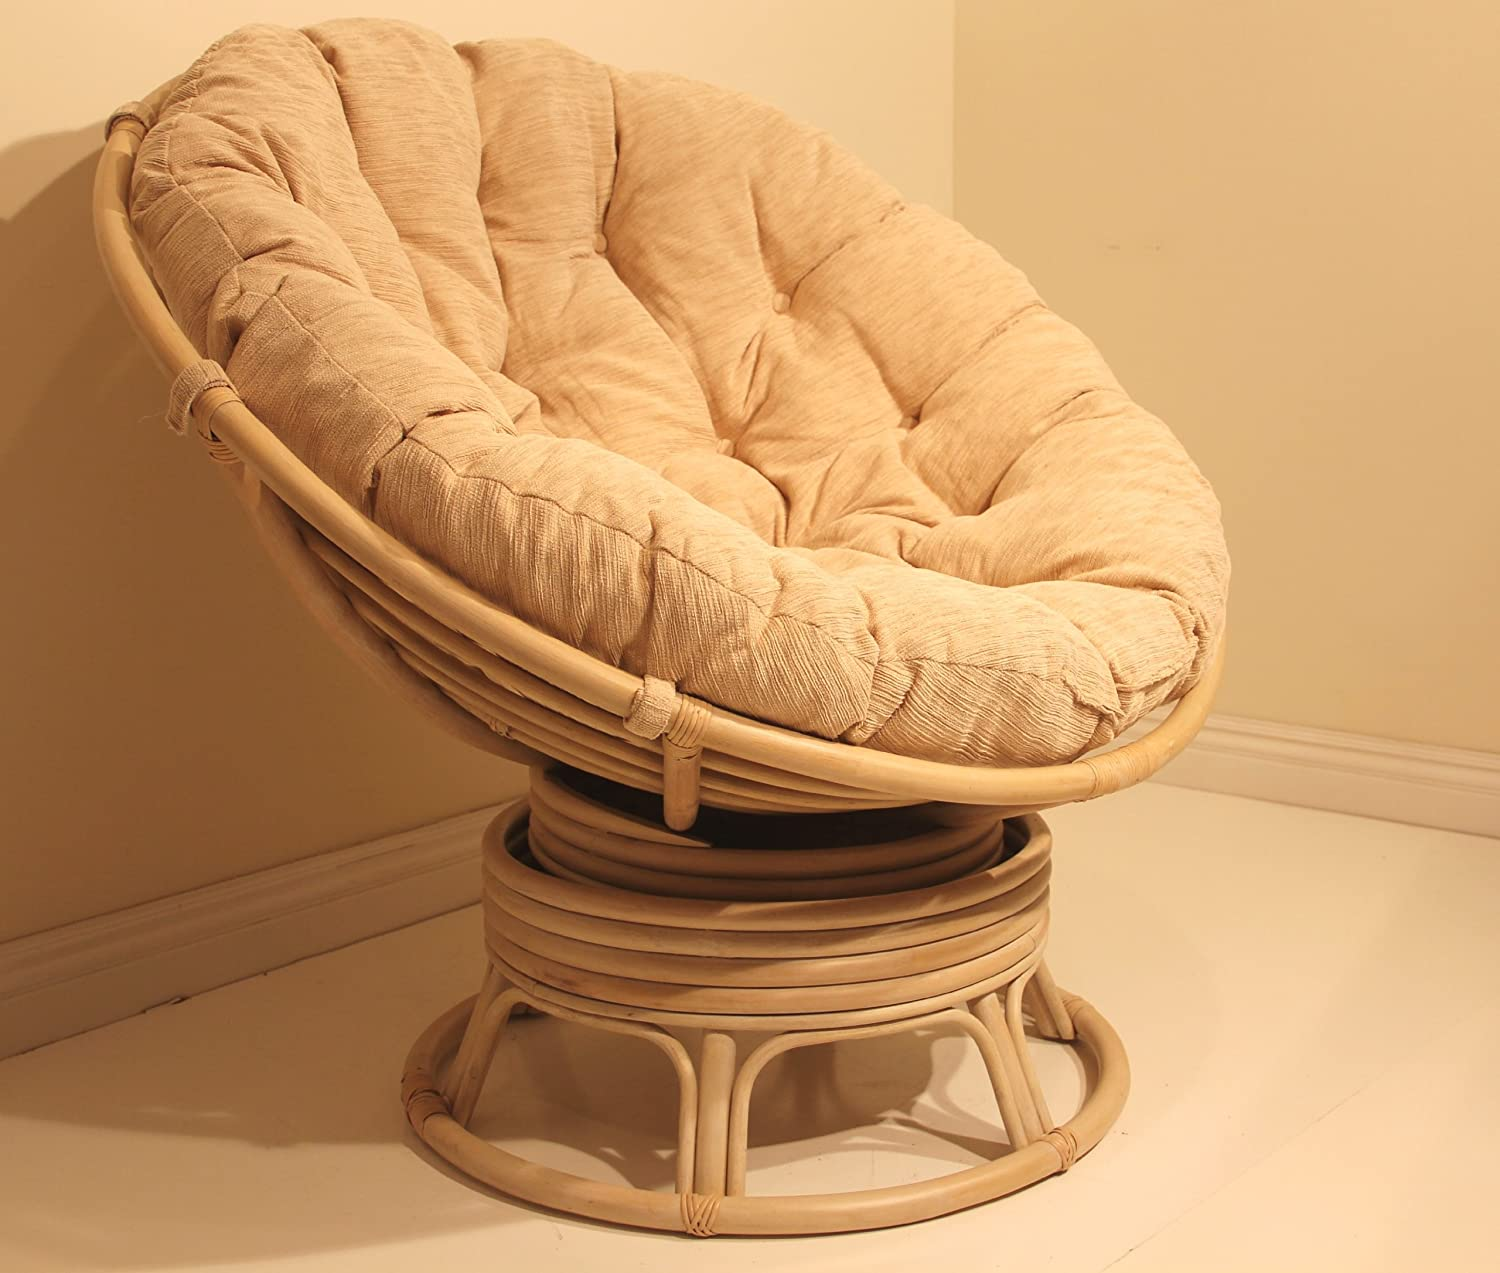 Rattan Wicker Swivel Rocking Round Papasan Chair with Cushion Colonial